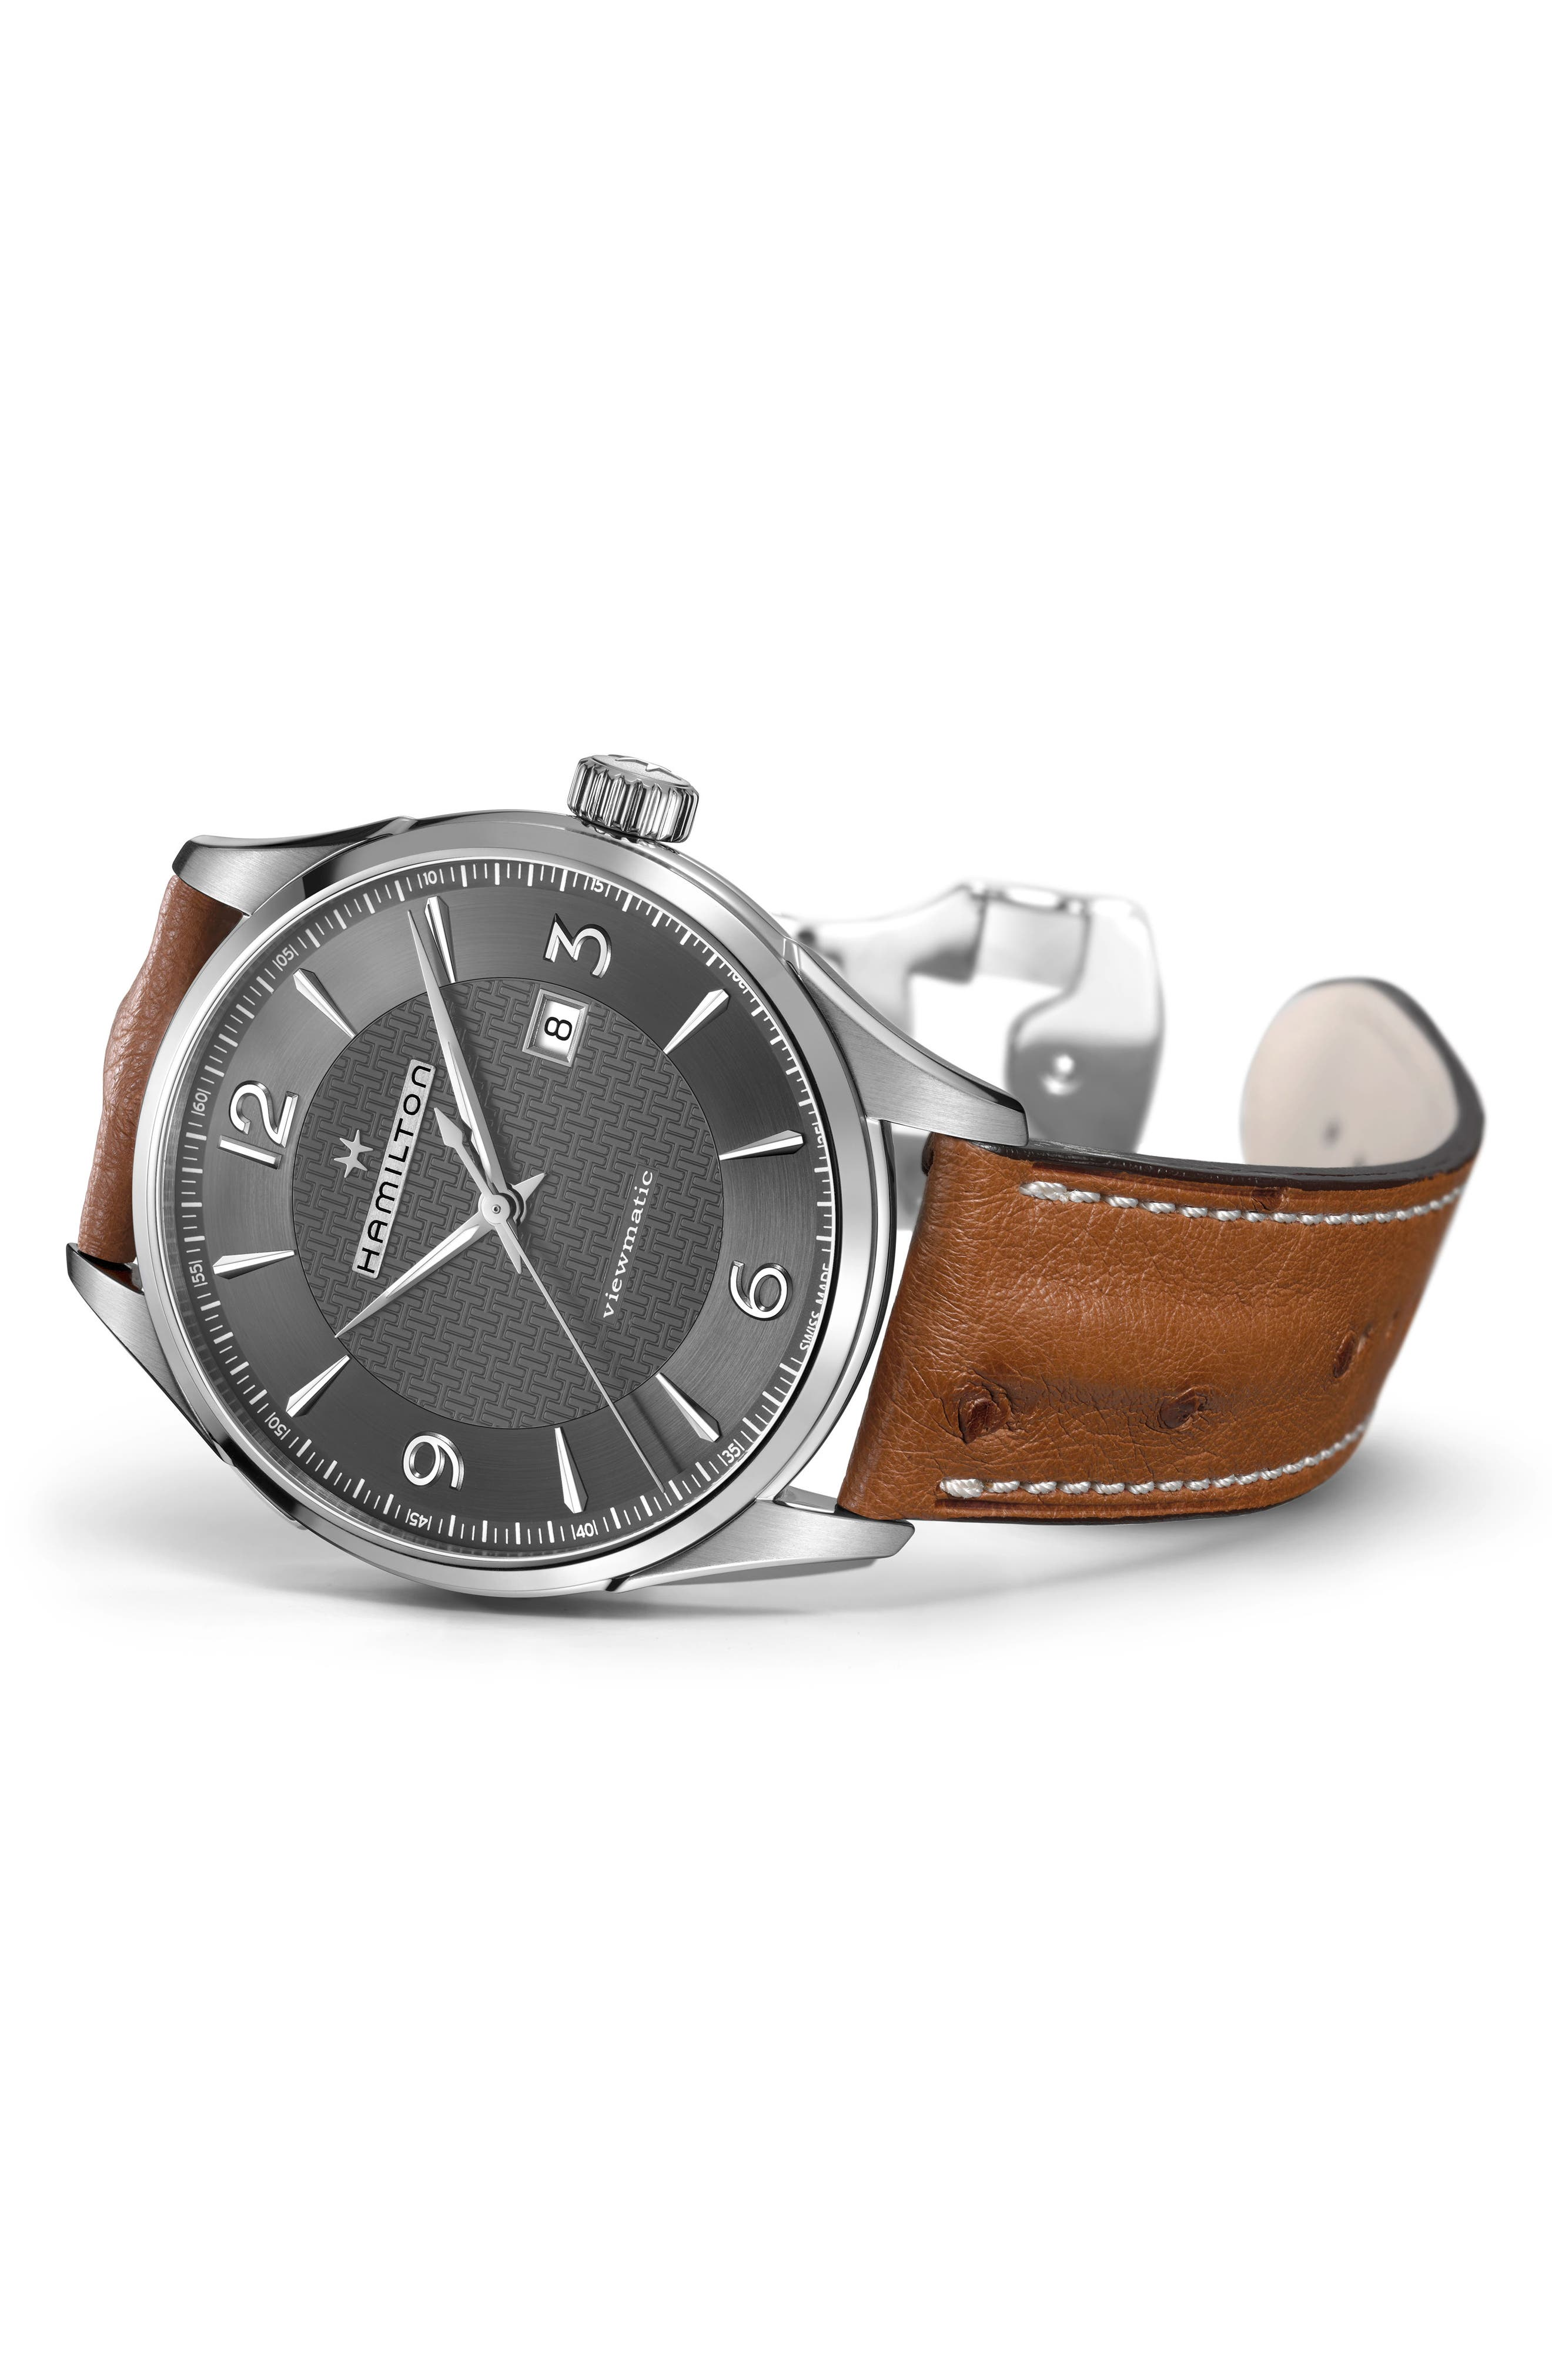 Jazzmaster Viewmatic Auto Ostrich Leather Strap Watch, 44mm,                             Alternate thumbnail 3, color,                             BROWN/ GUNMETAL/ SILVER